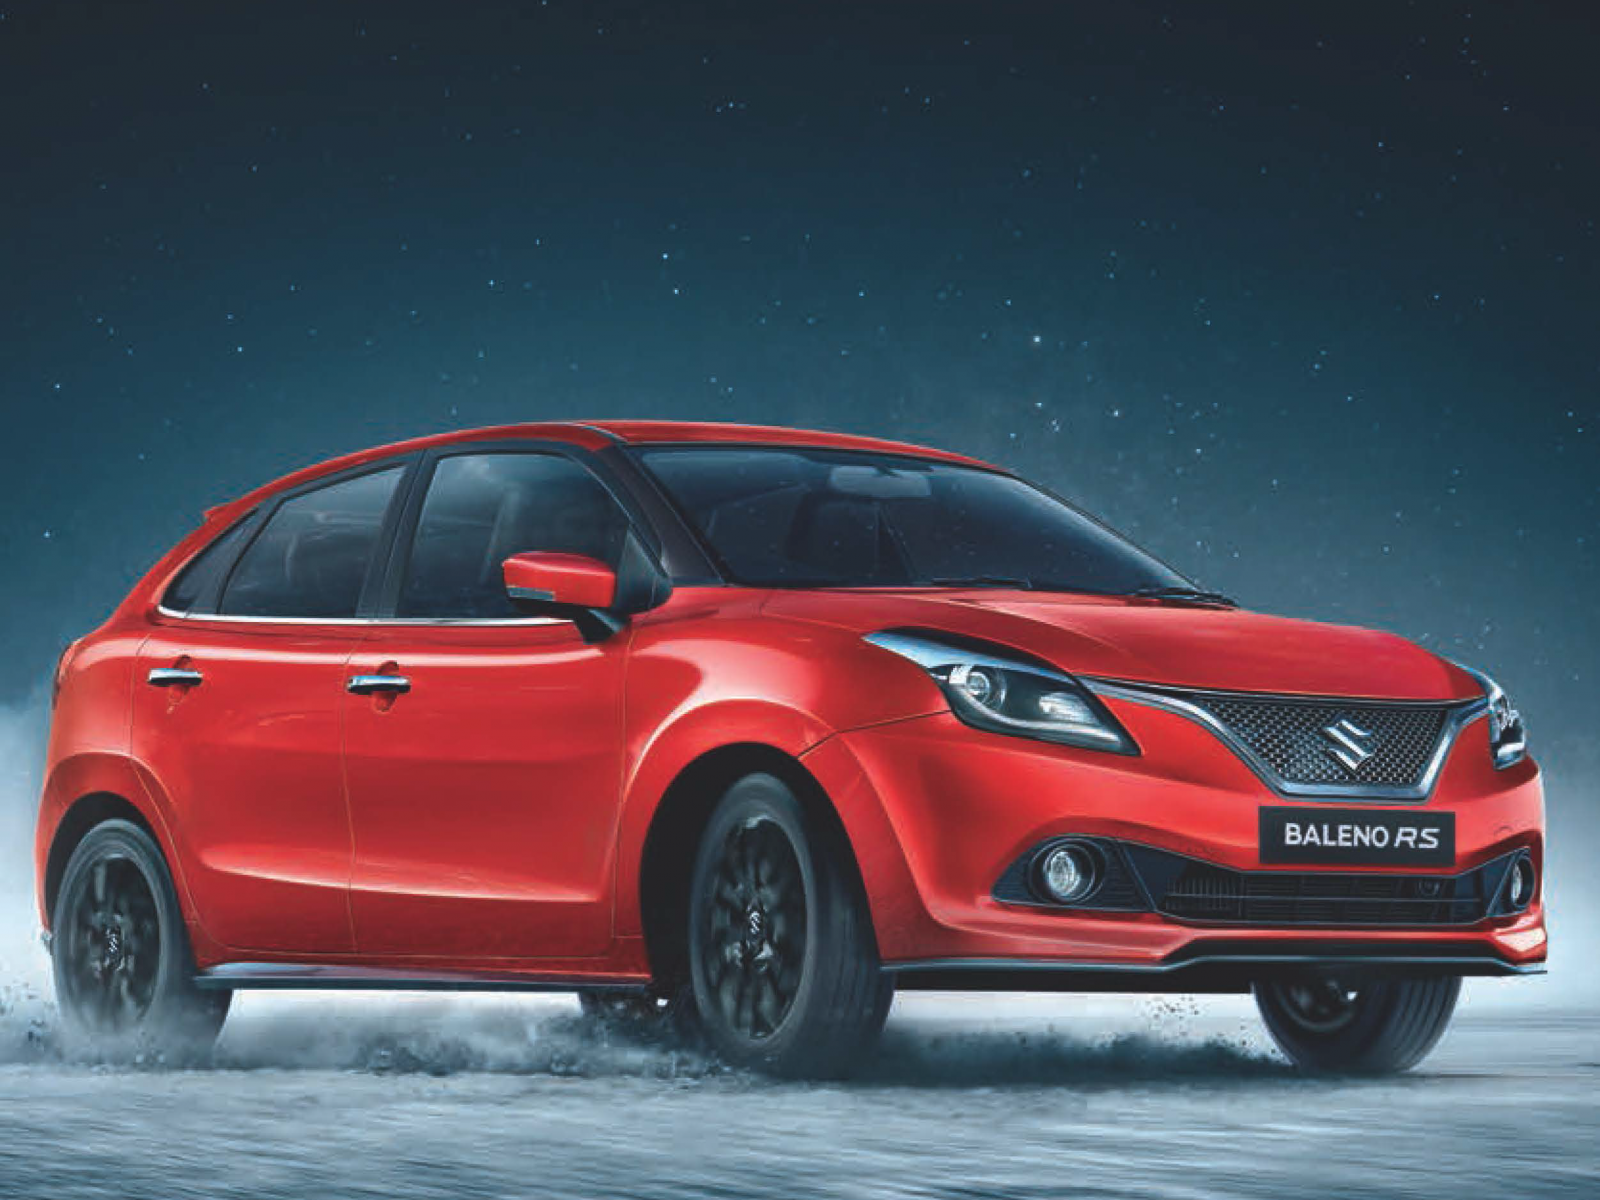 Maruti Suzuki Baleno Wallpapers Free Download